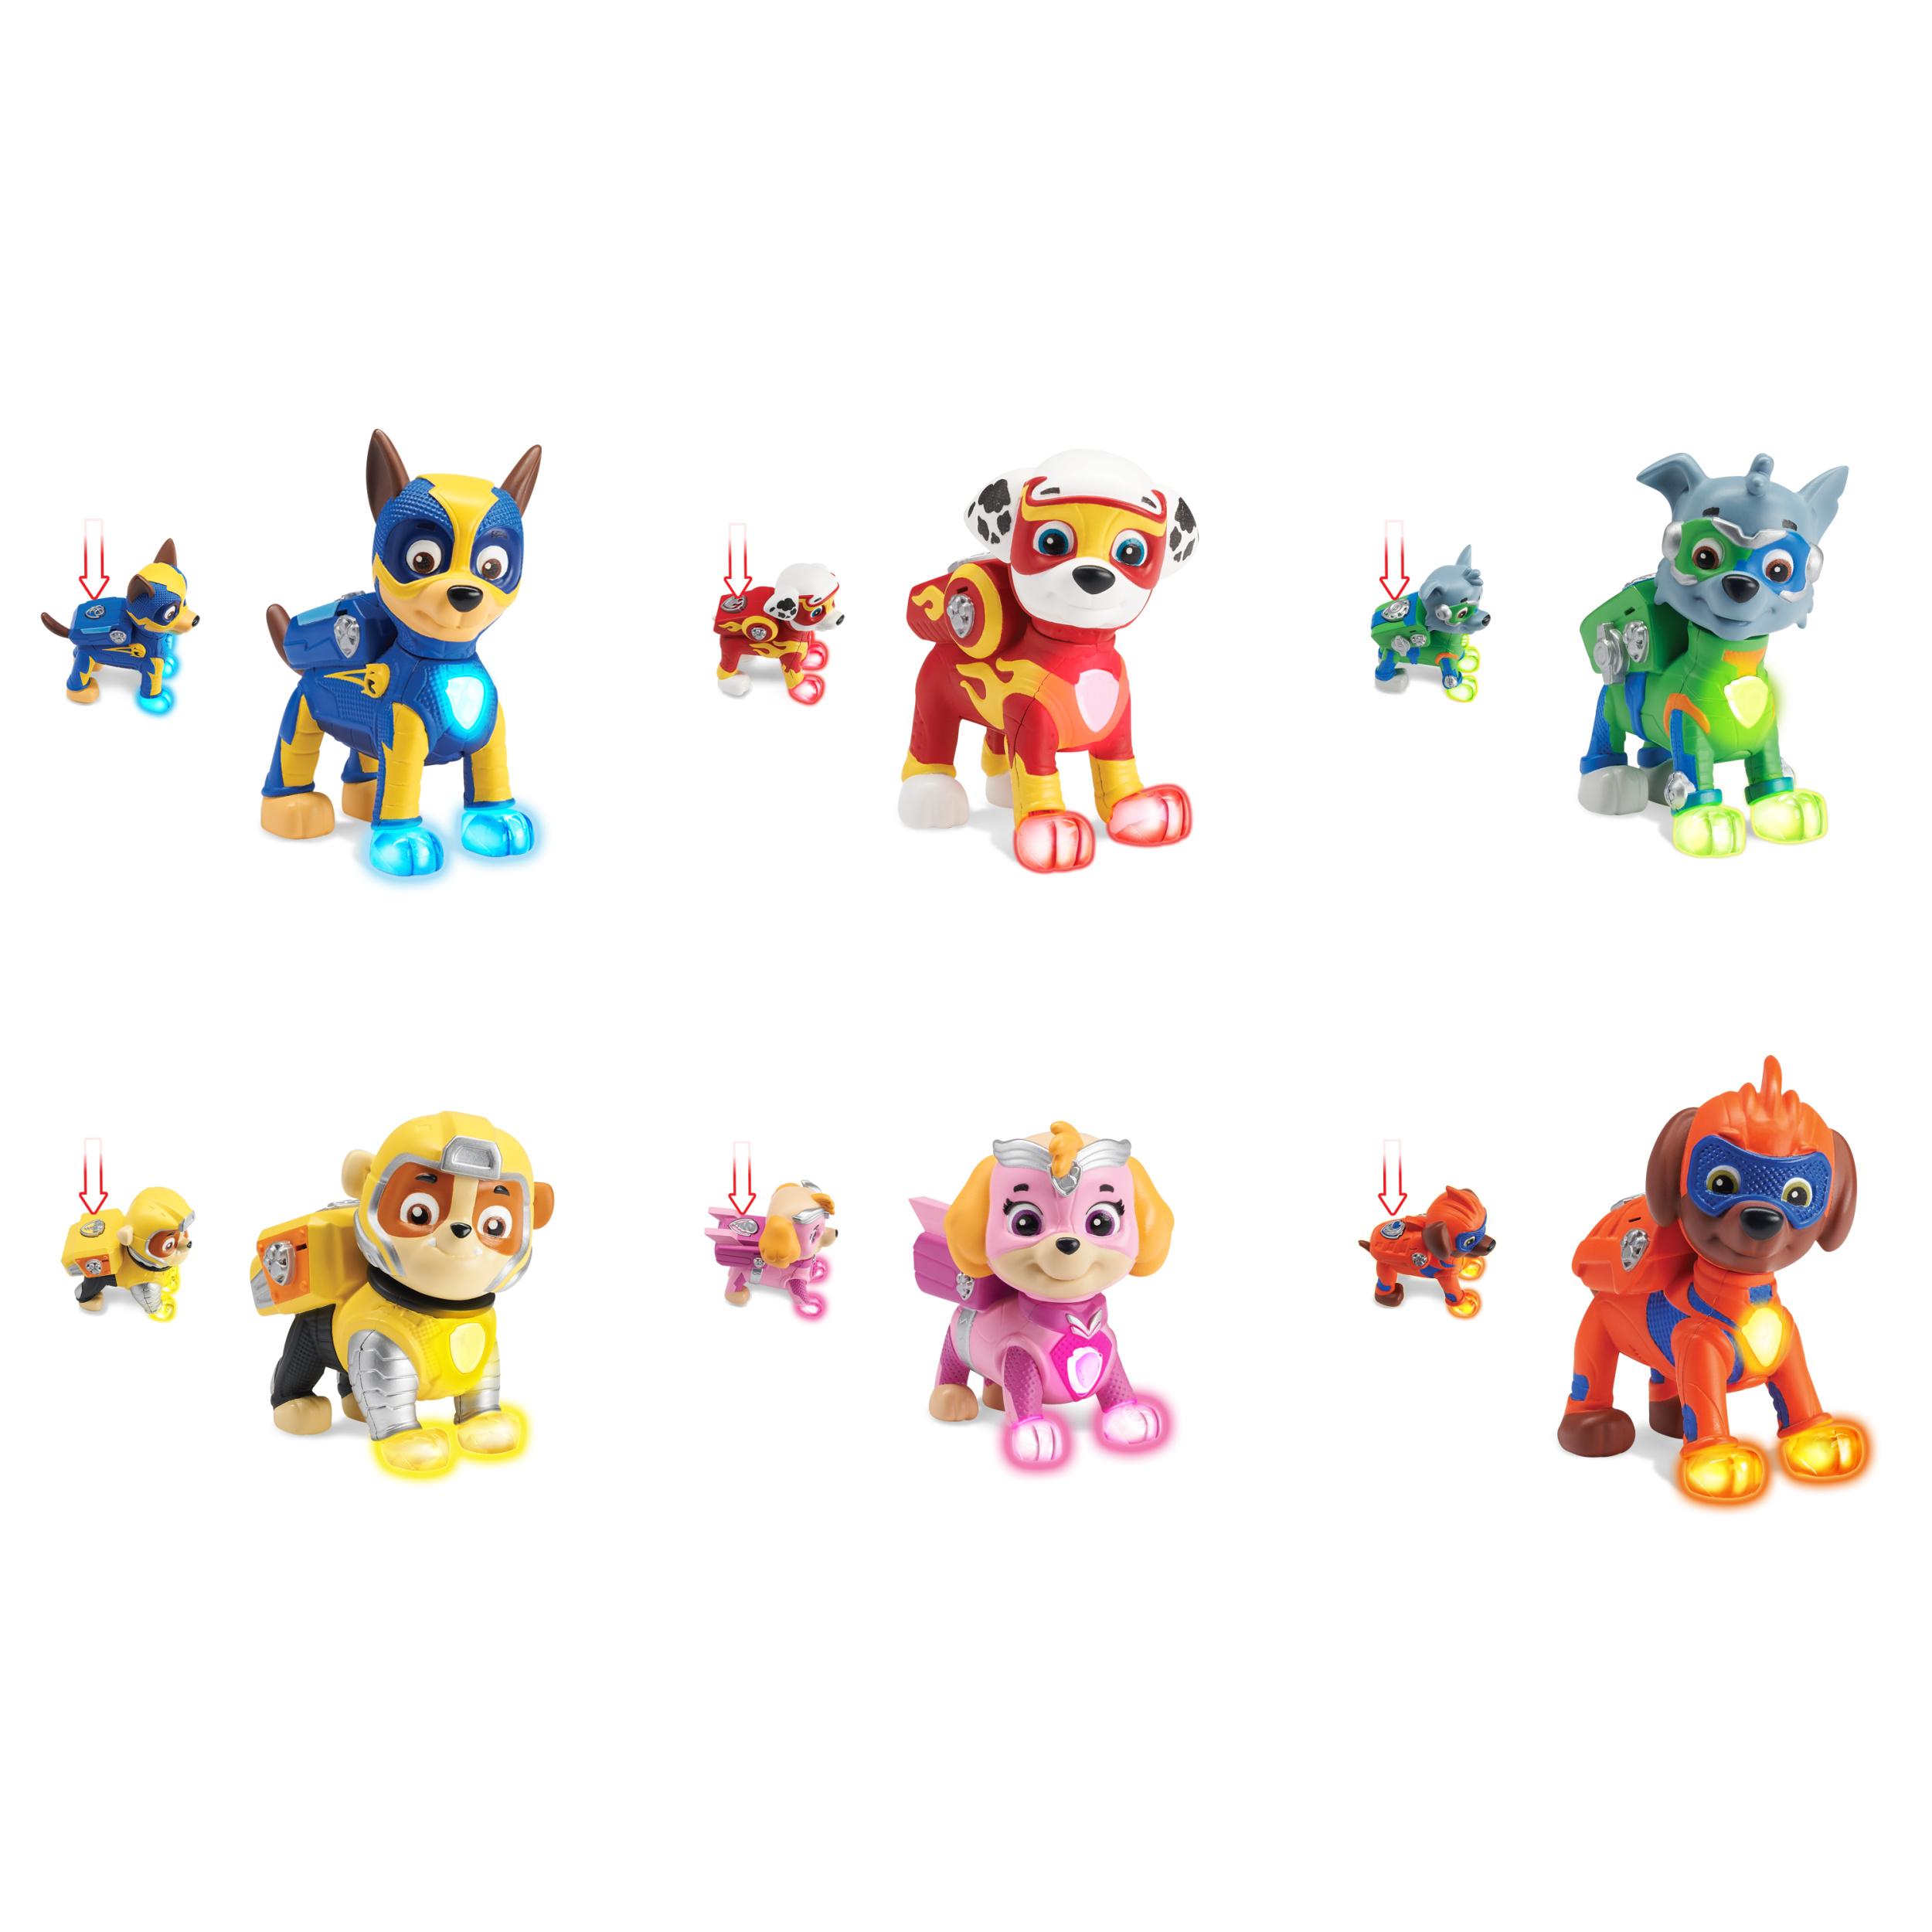 PAW Patrol - Mighty Pups 6-Pack Gift Set, PAW Patrol Figures